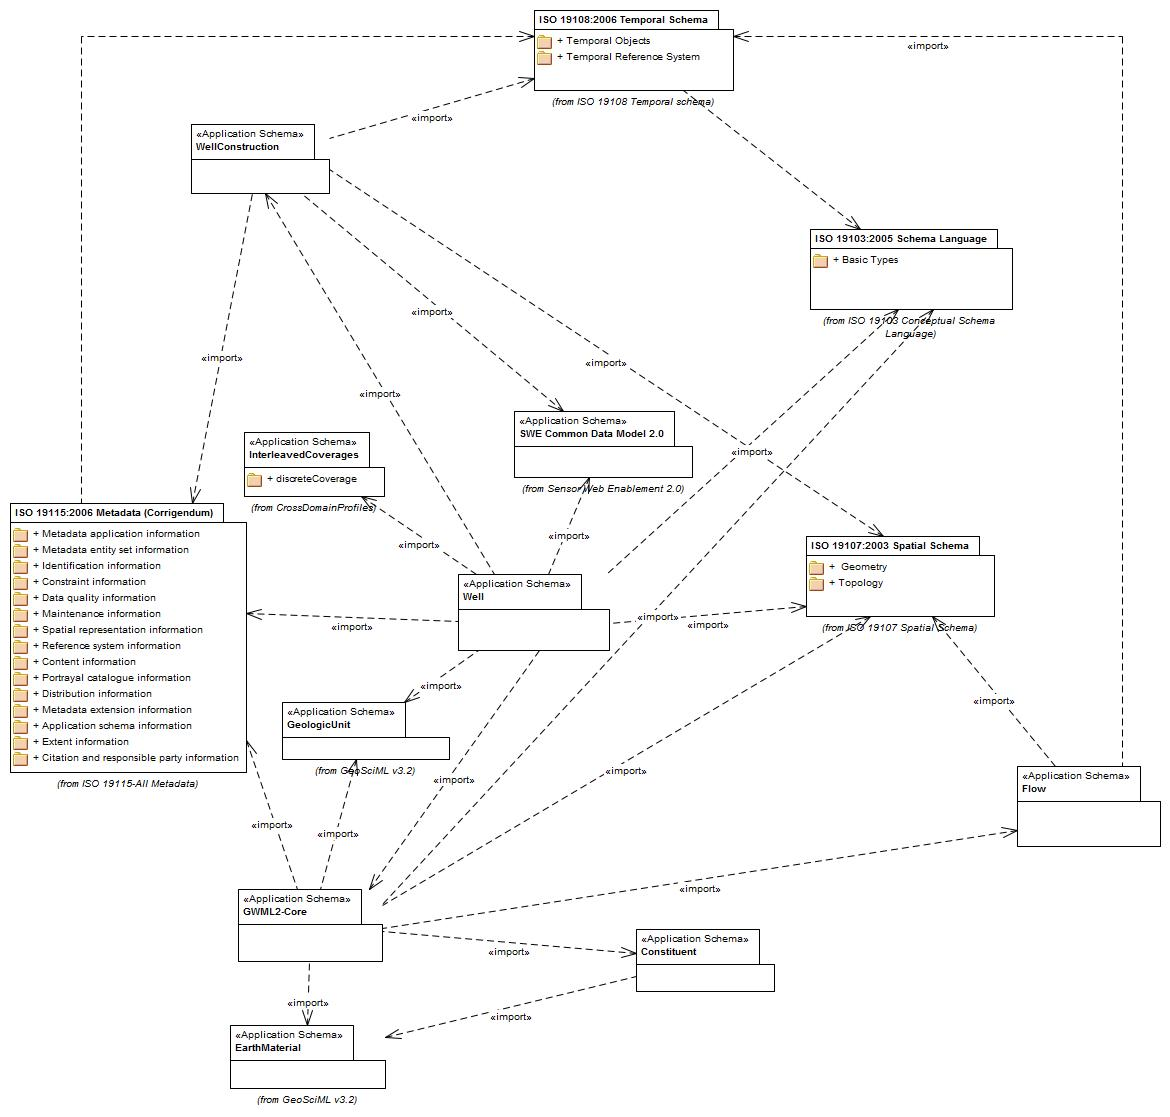 GWML2PackageDependencies-July2014.jpg